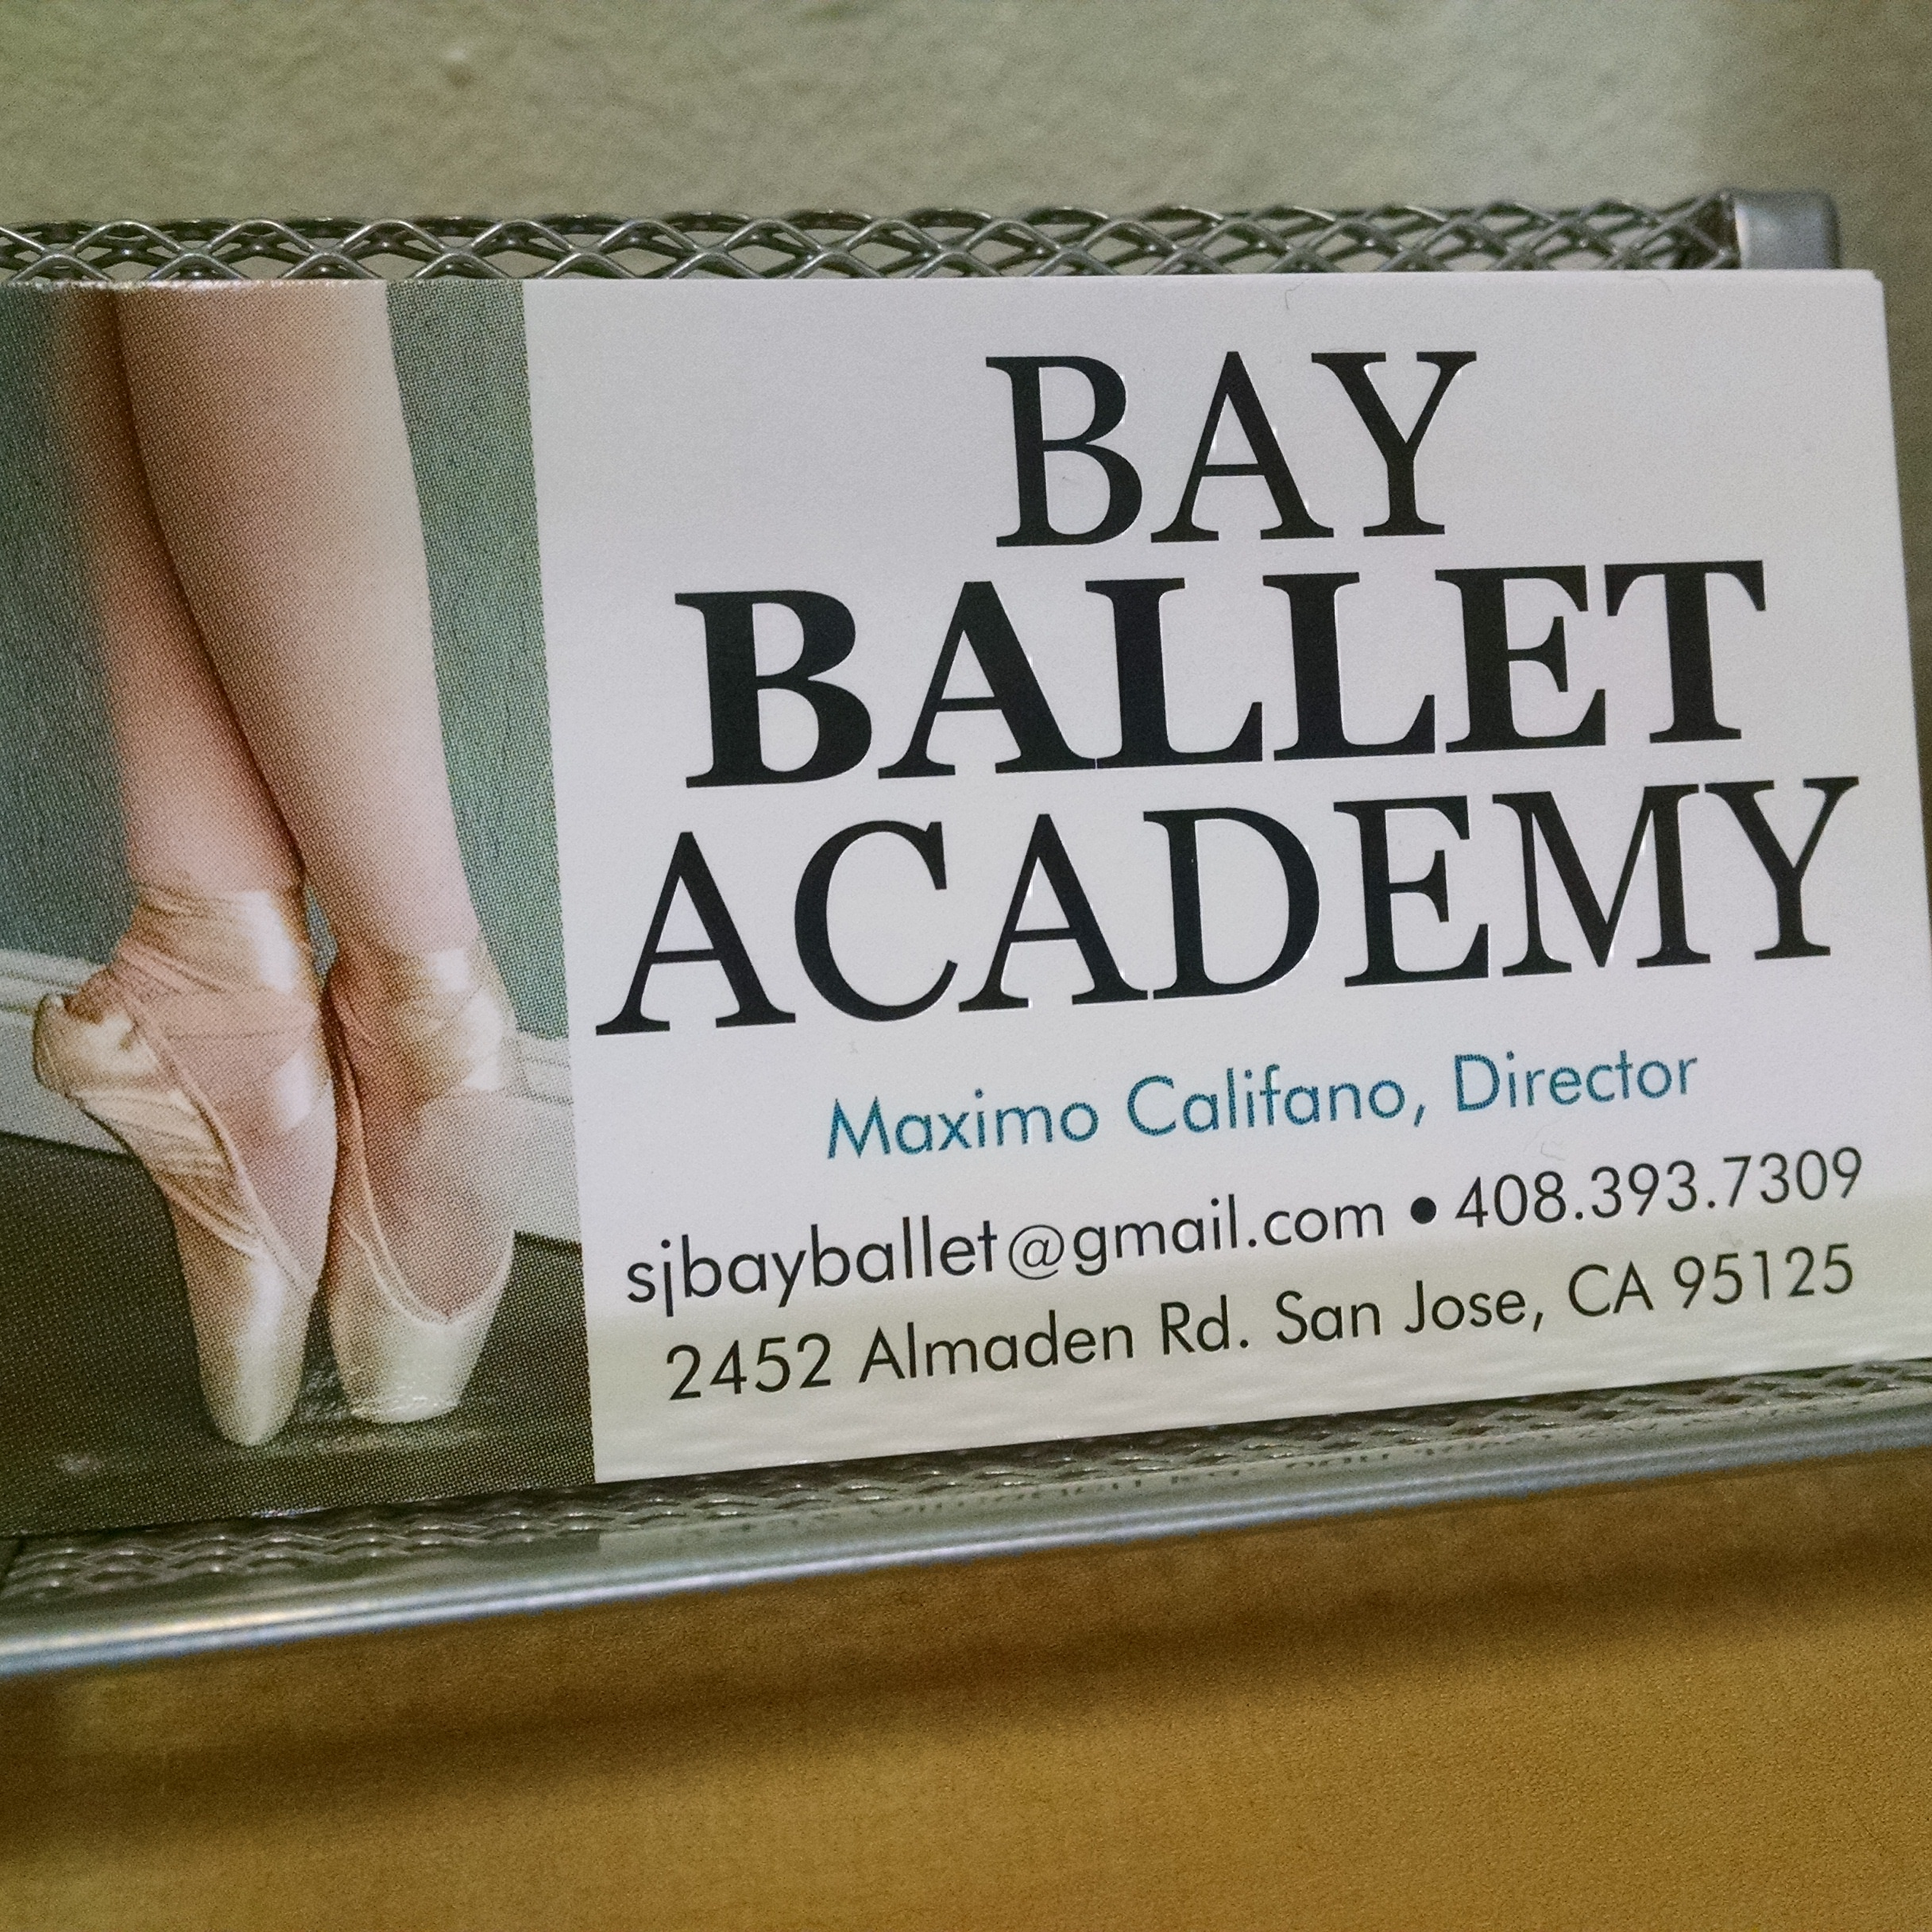 Bay_Ballet_Academy_San_Jose_dance_classes_Willow_Glen_Maximo_Califano